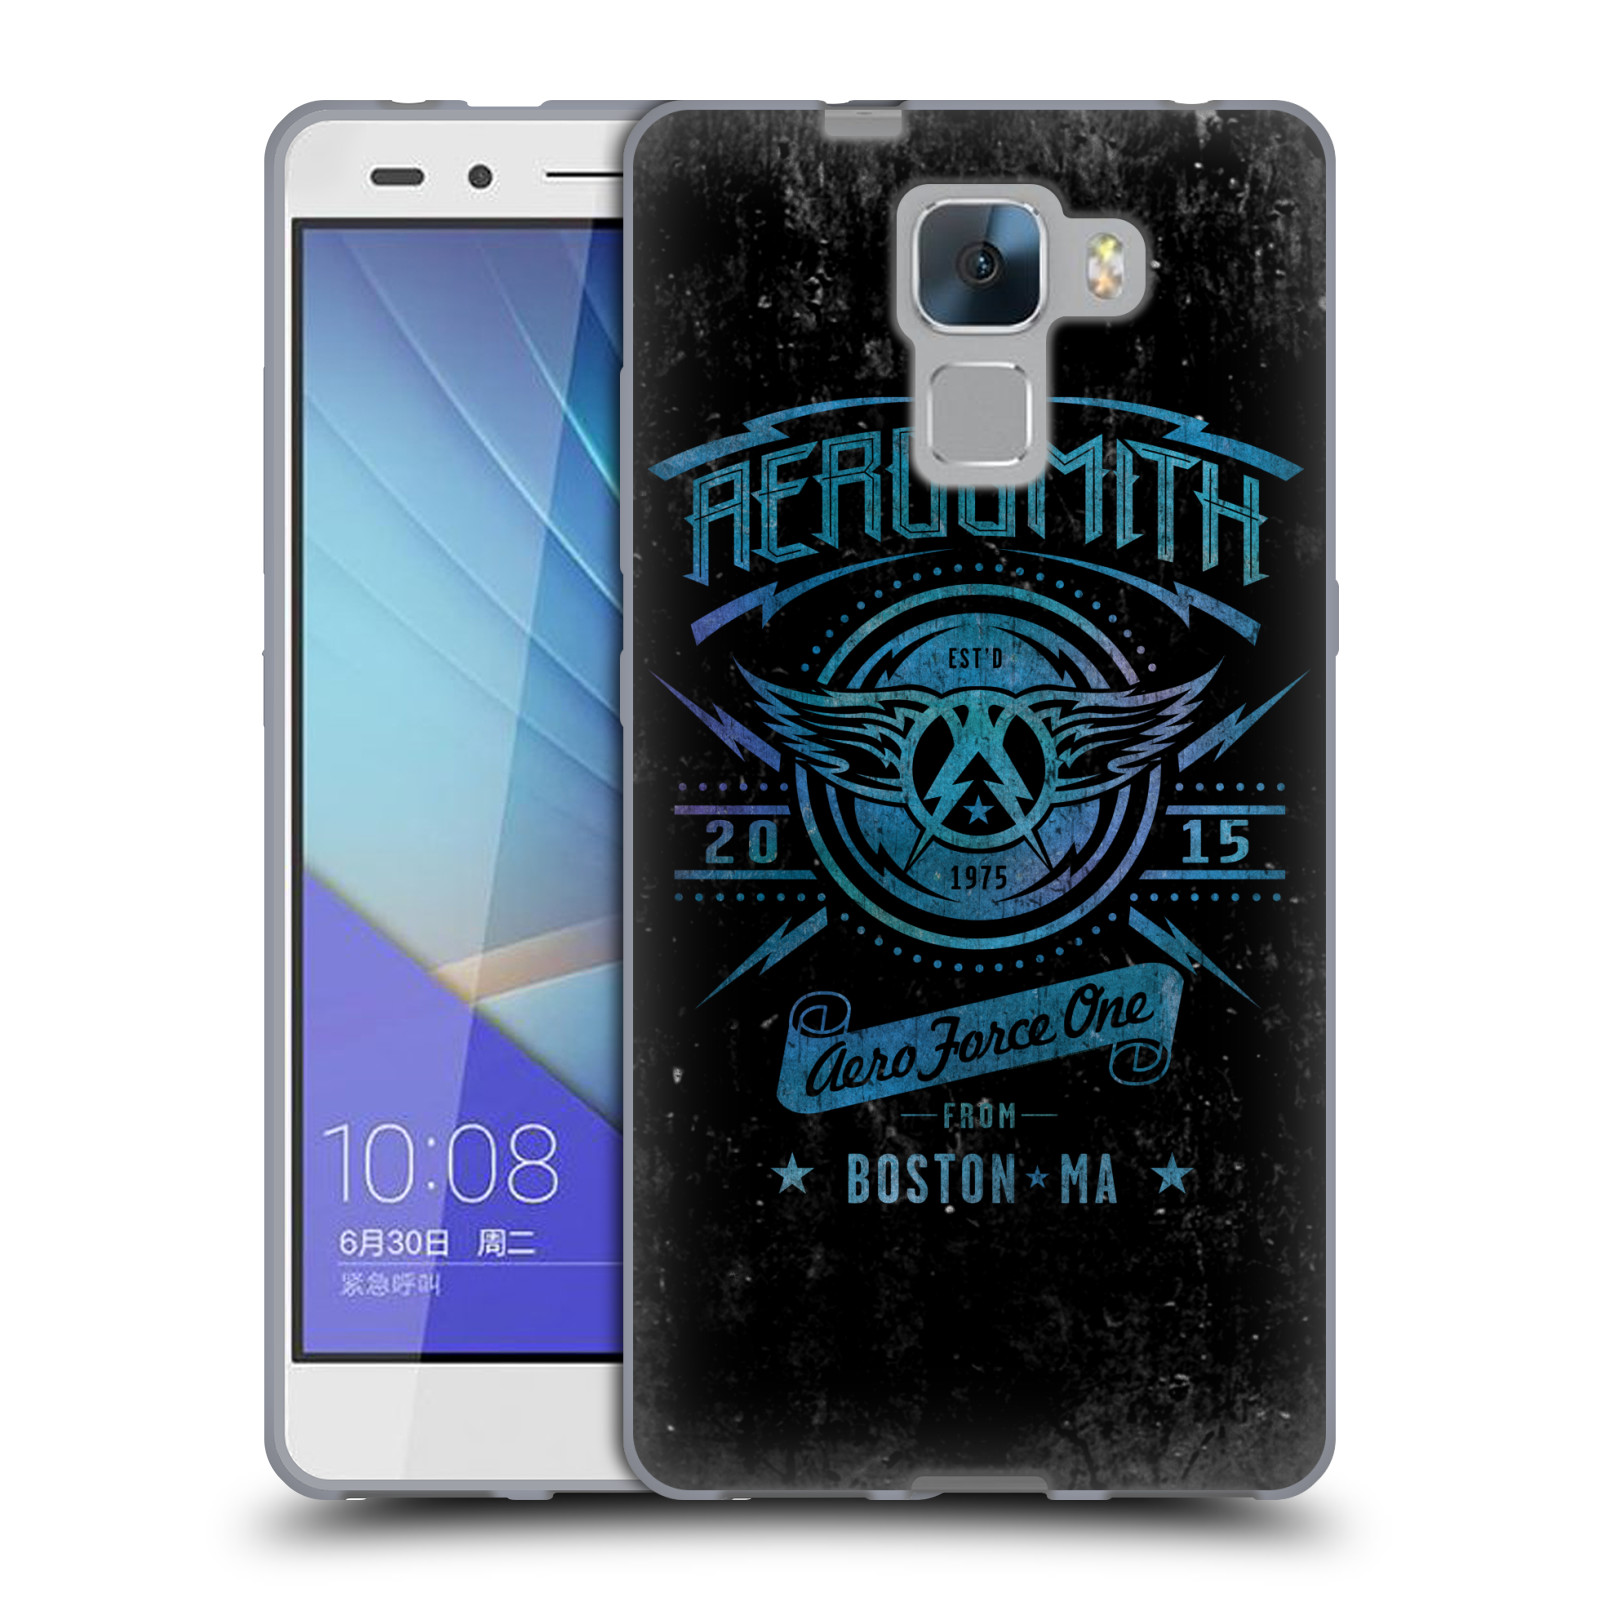 Silikonové pouzdro na mobil Honor 7 HEAD CASE - Aerosmith - Aero Force One